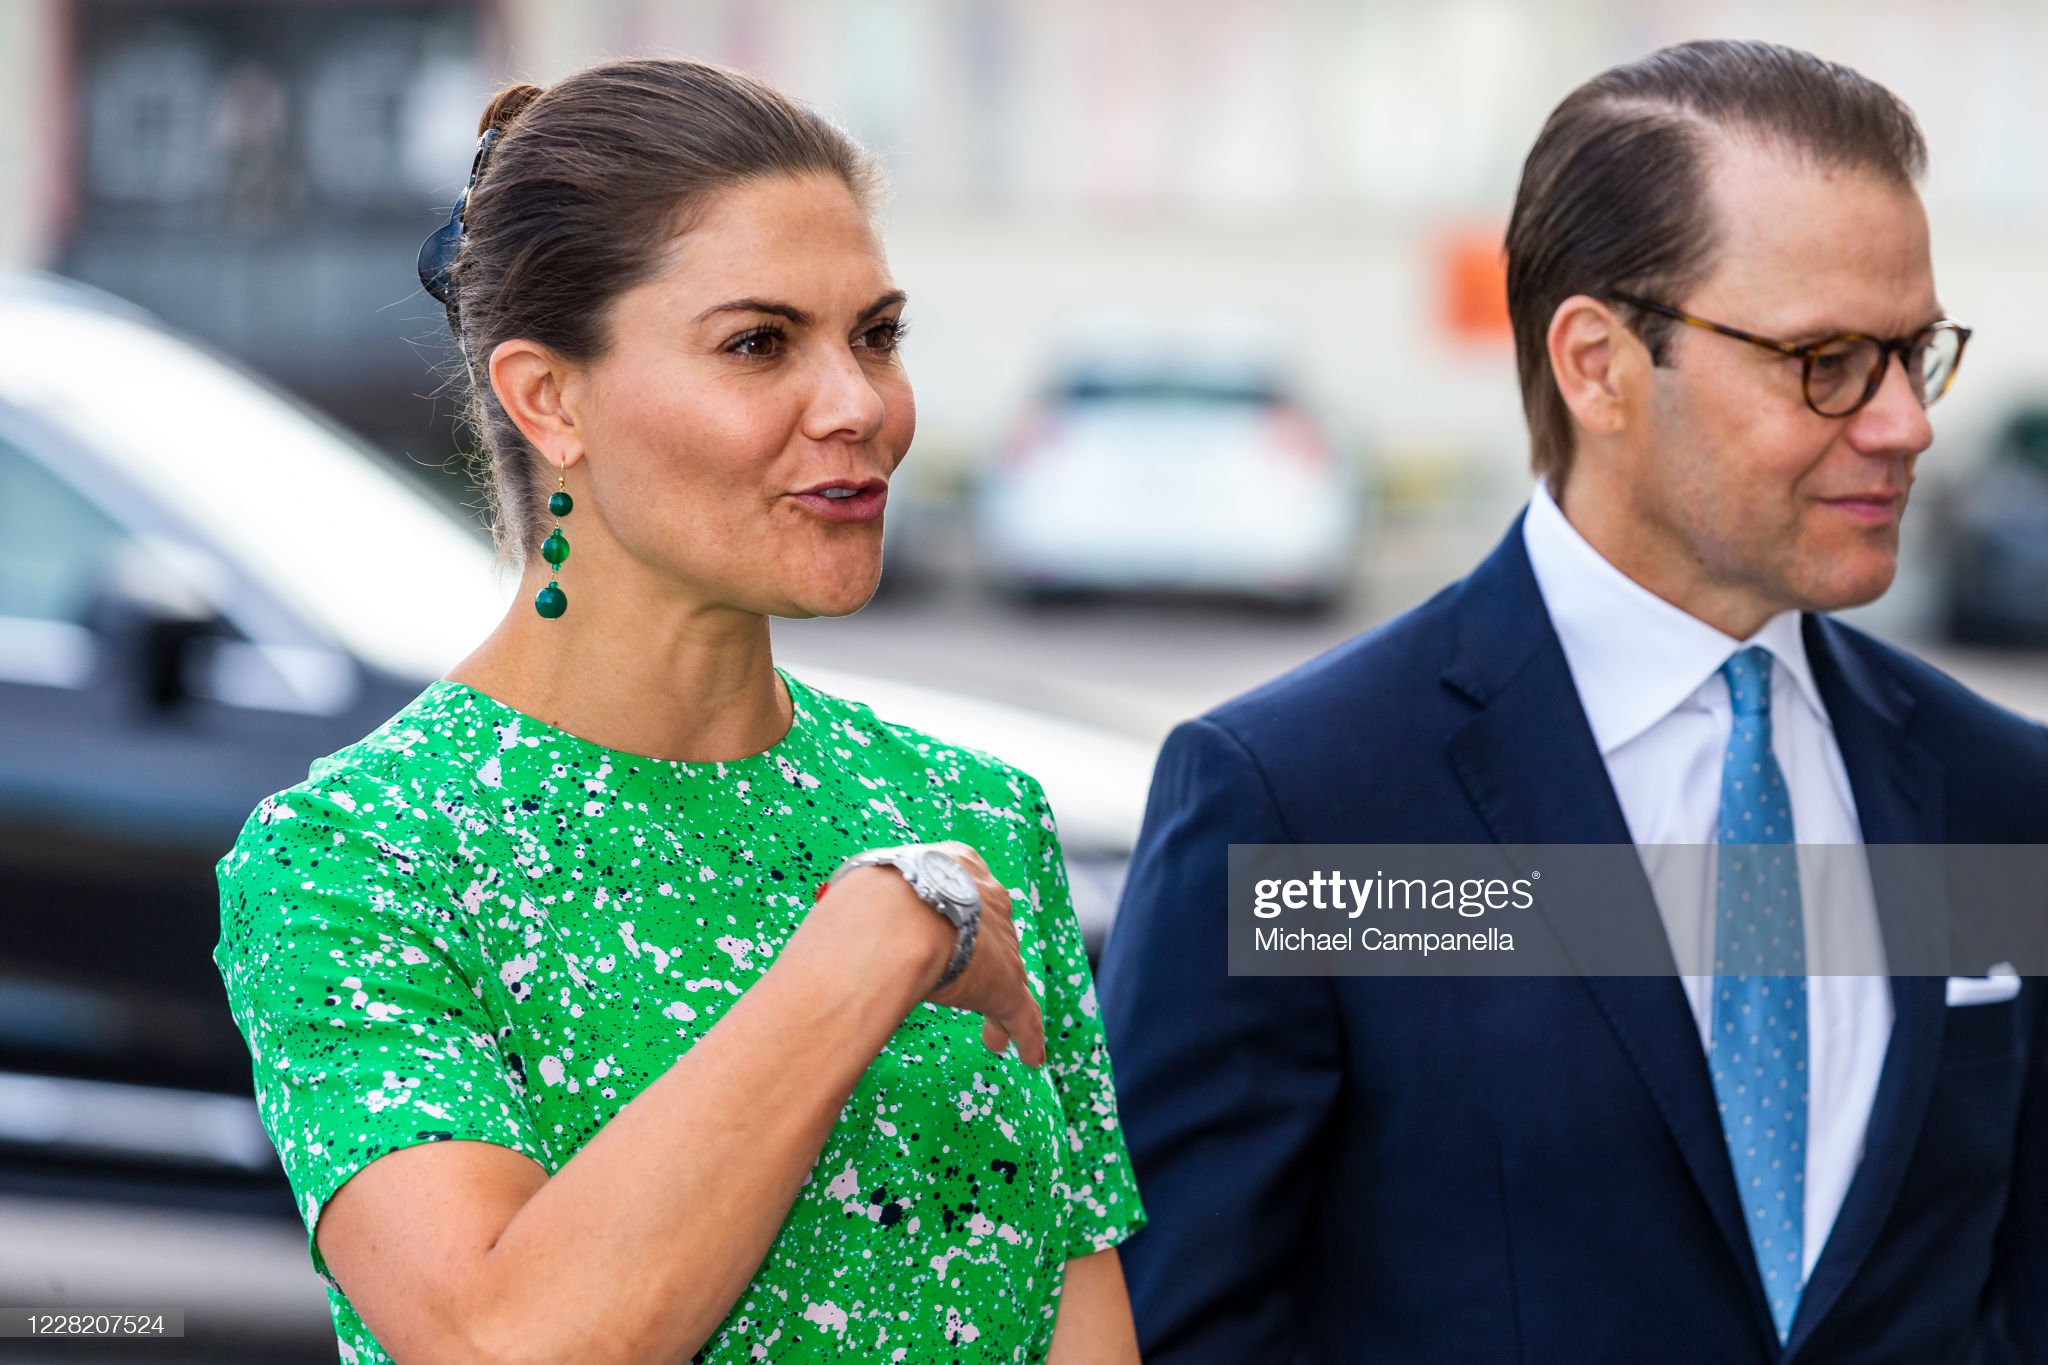 crown-princess-victoria-of-sweden-visits-the-artist-organization-on-picture-id1228207524